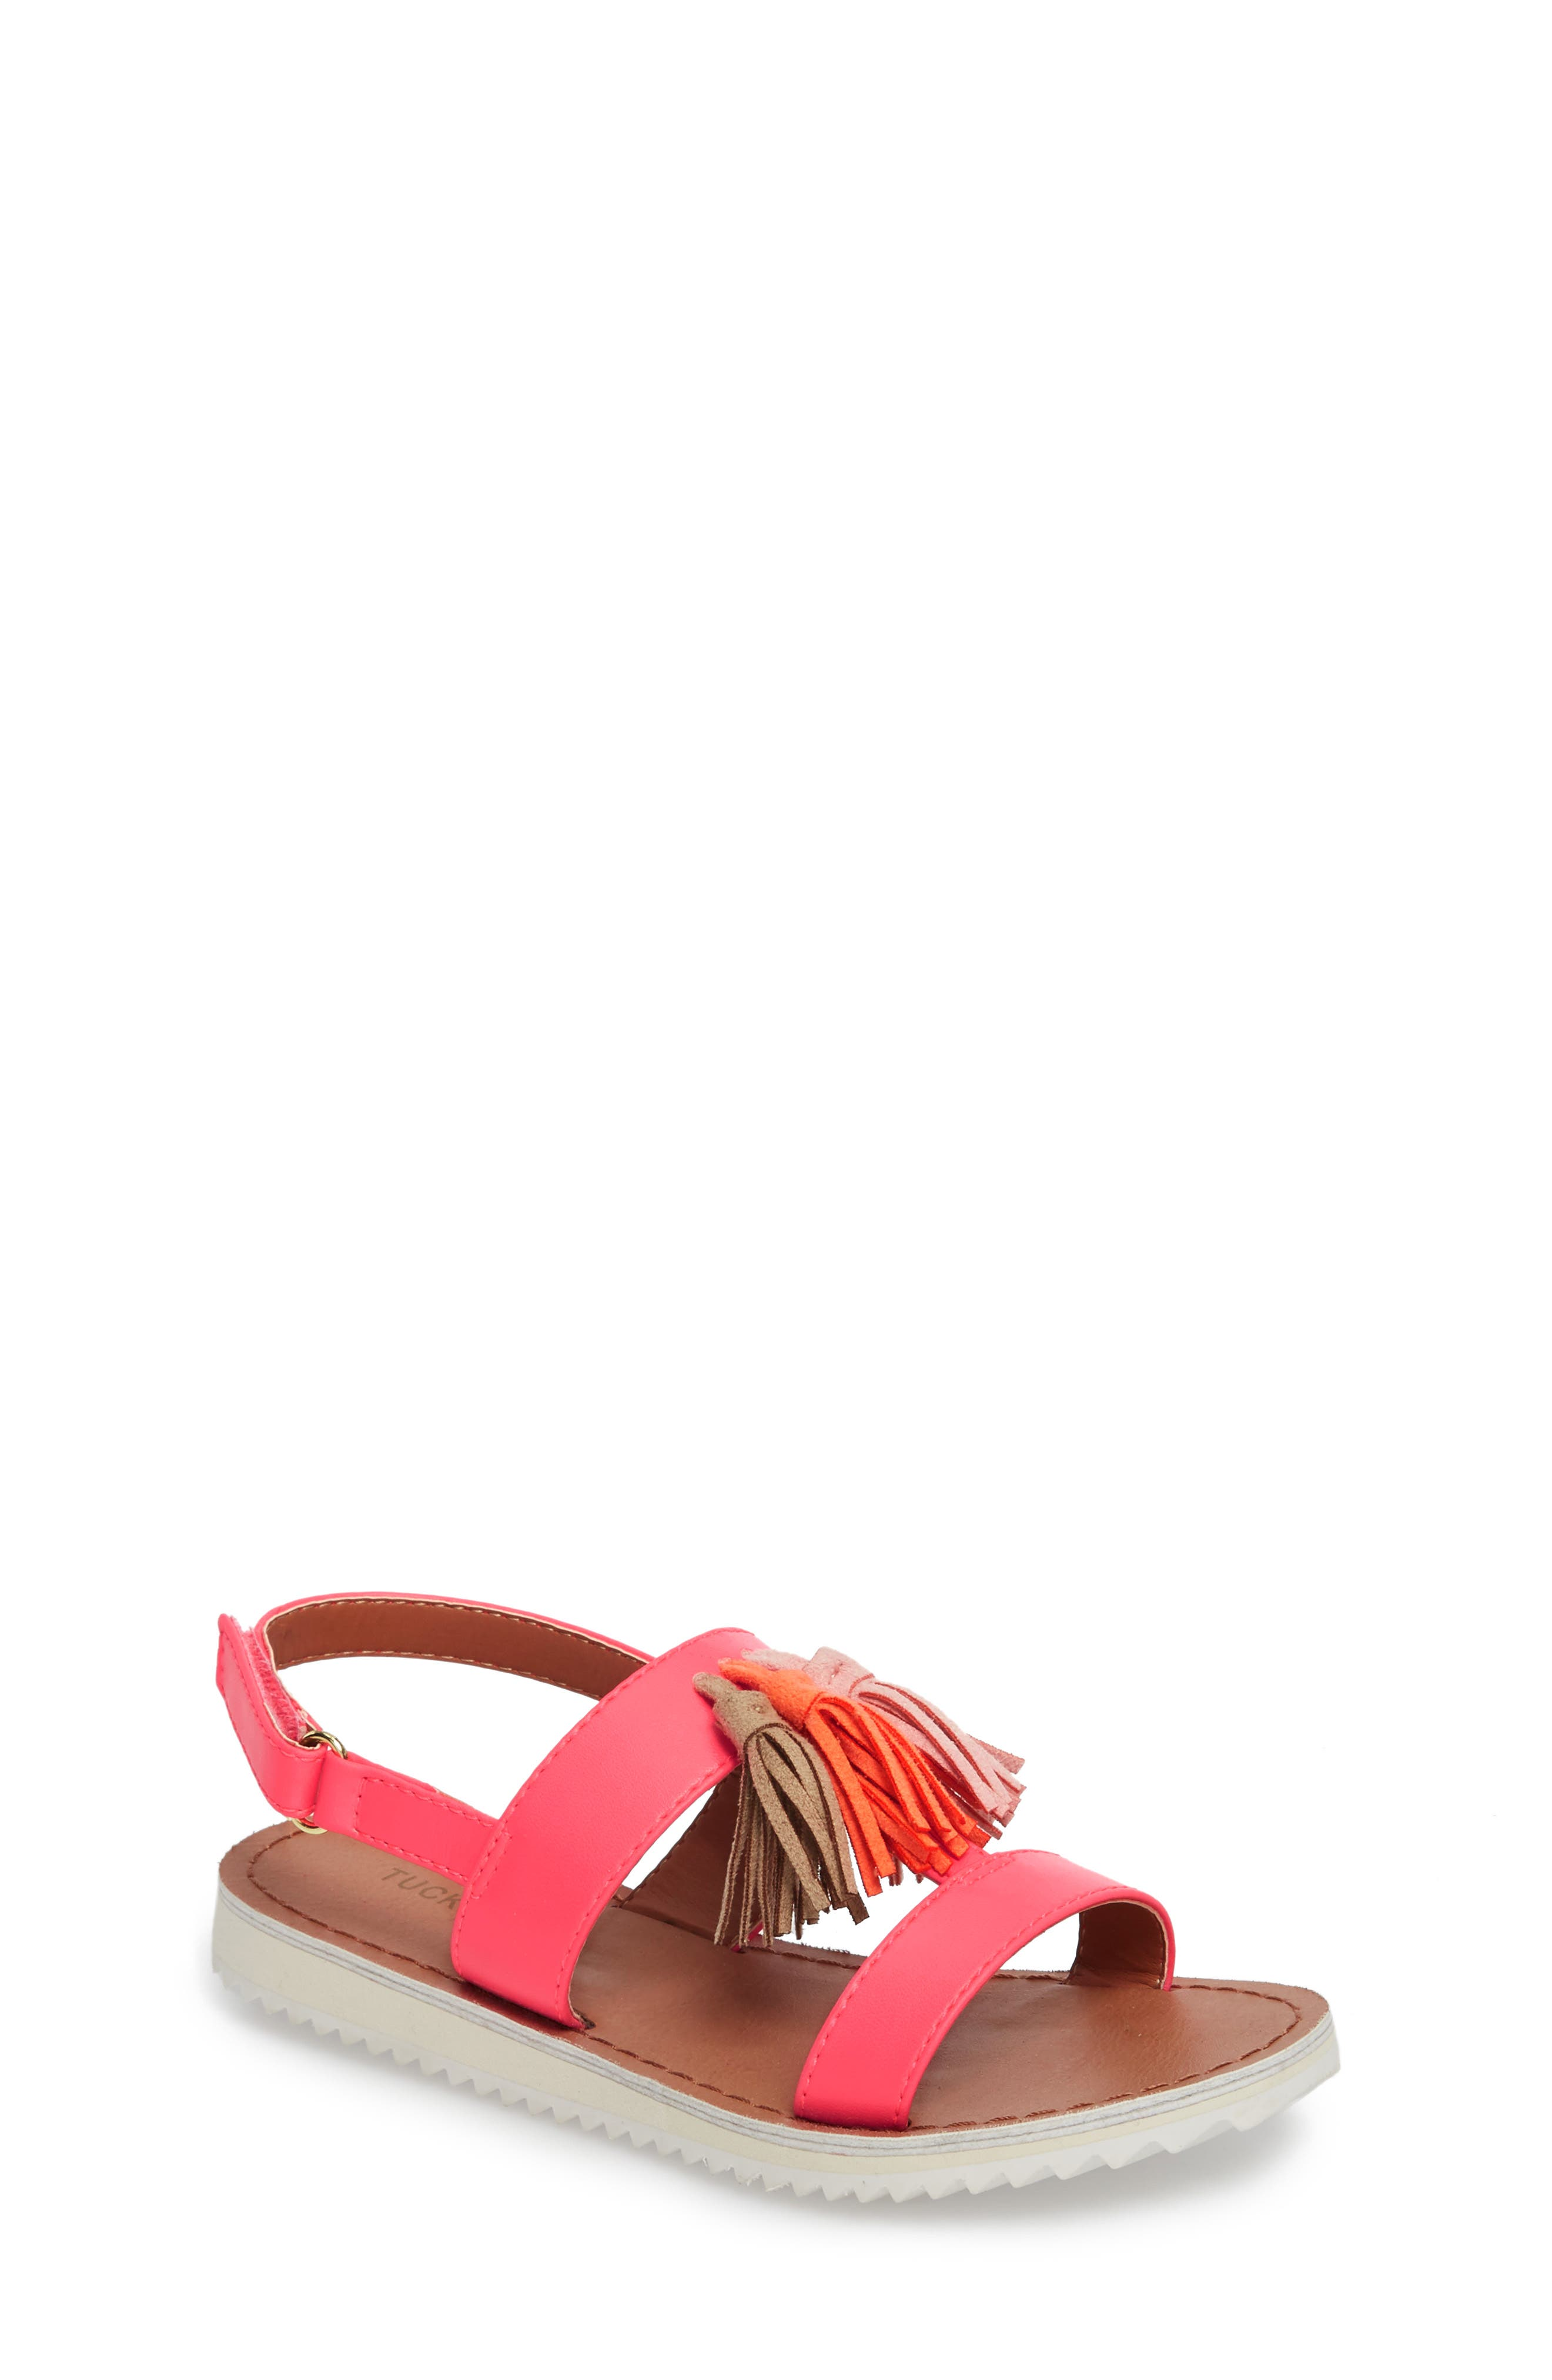 Mari Tasseled Sandal,                             Main thumbnail 1, color,                             690